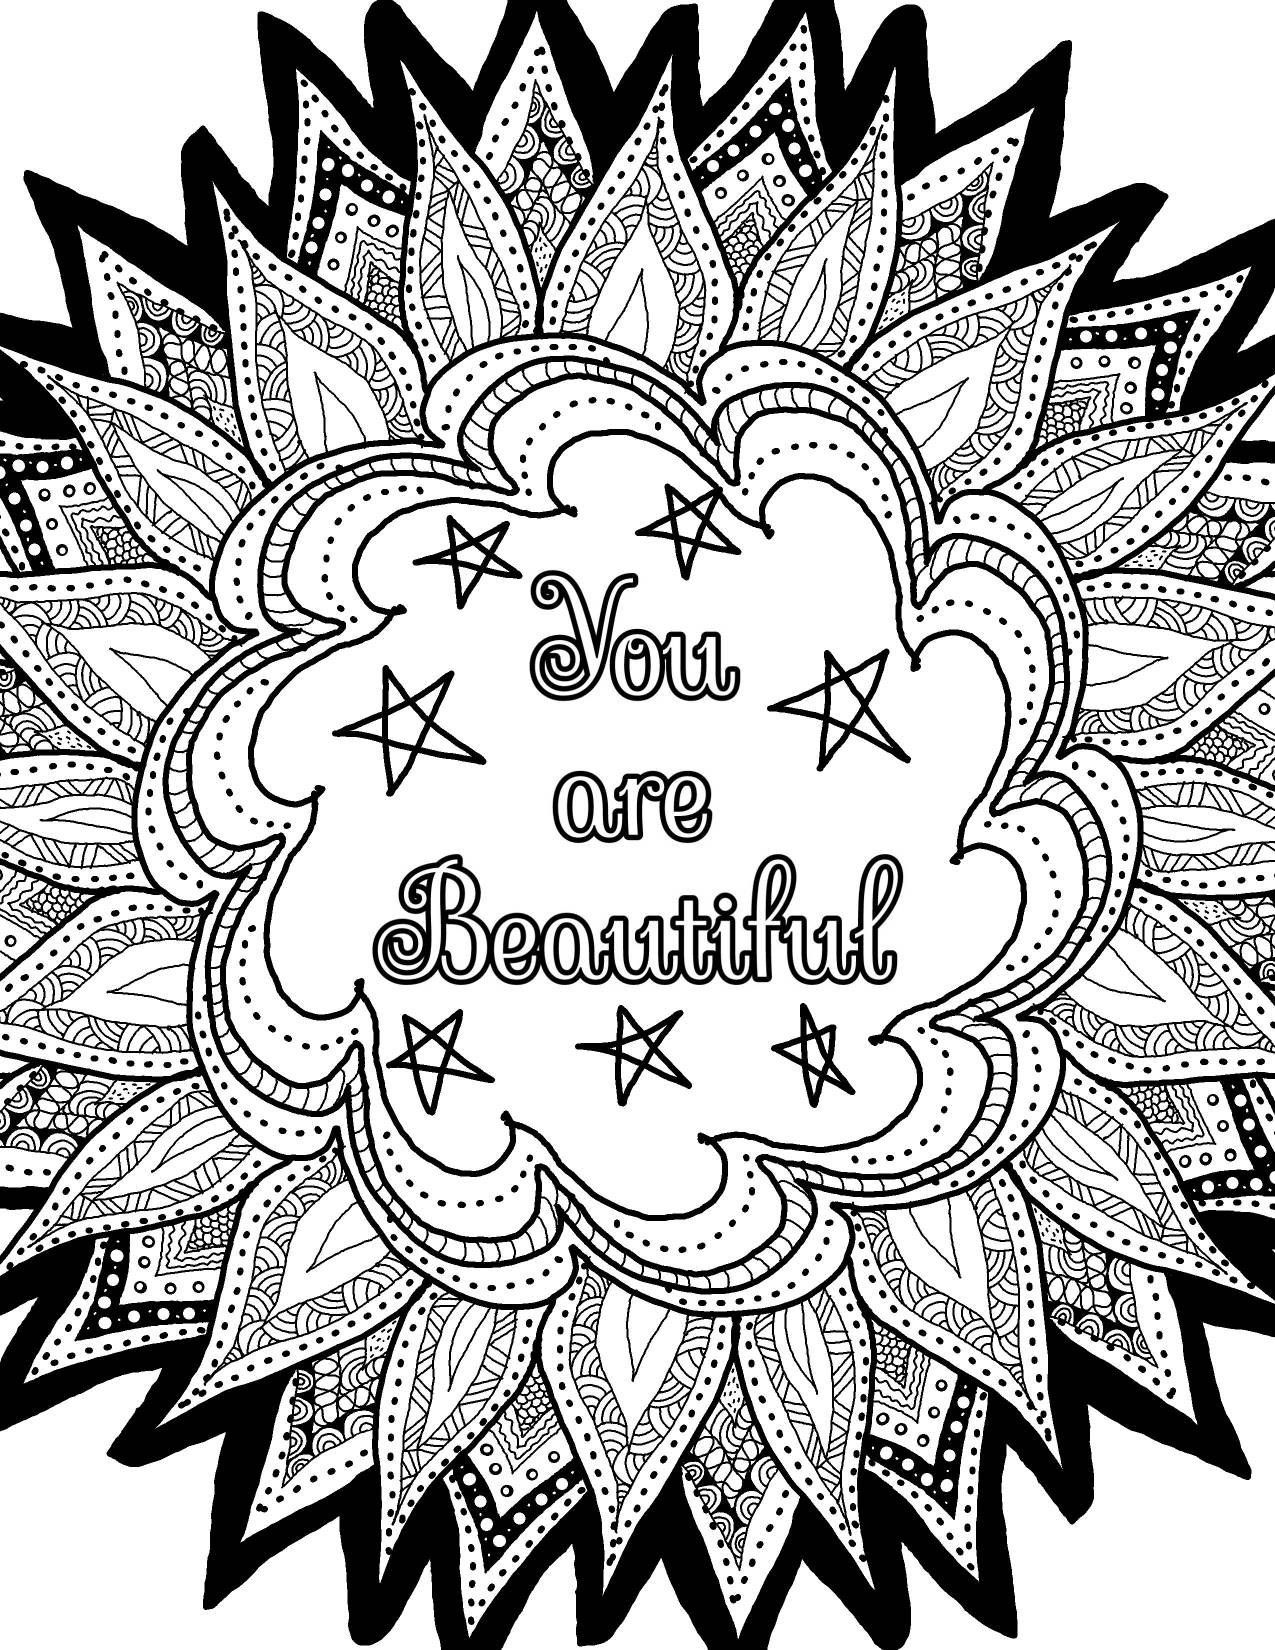 Adult Coloring Book Printable Coloring Pages Inspirational Quotes